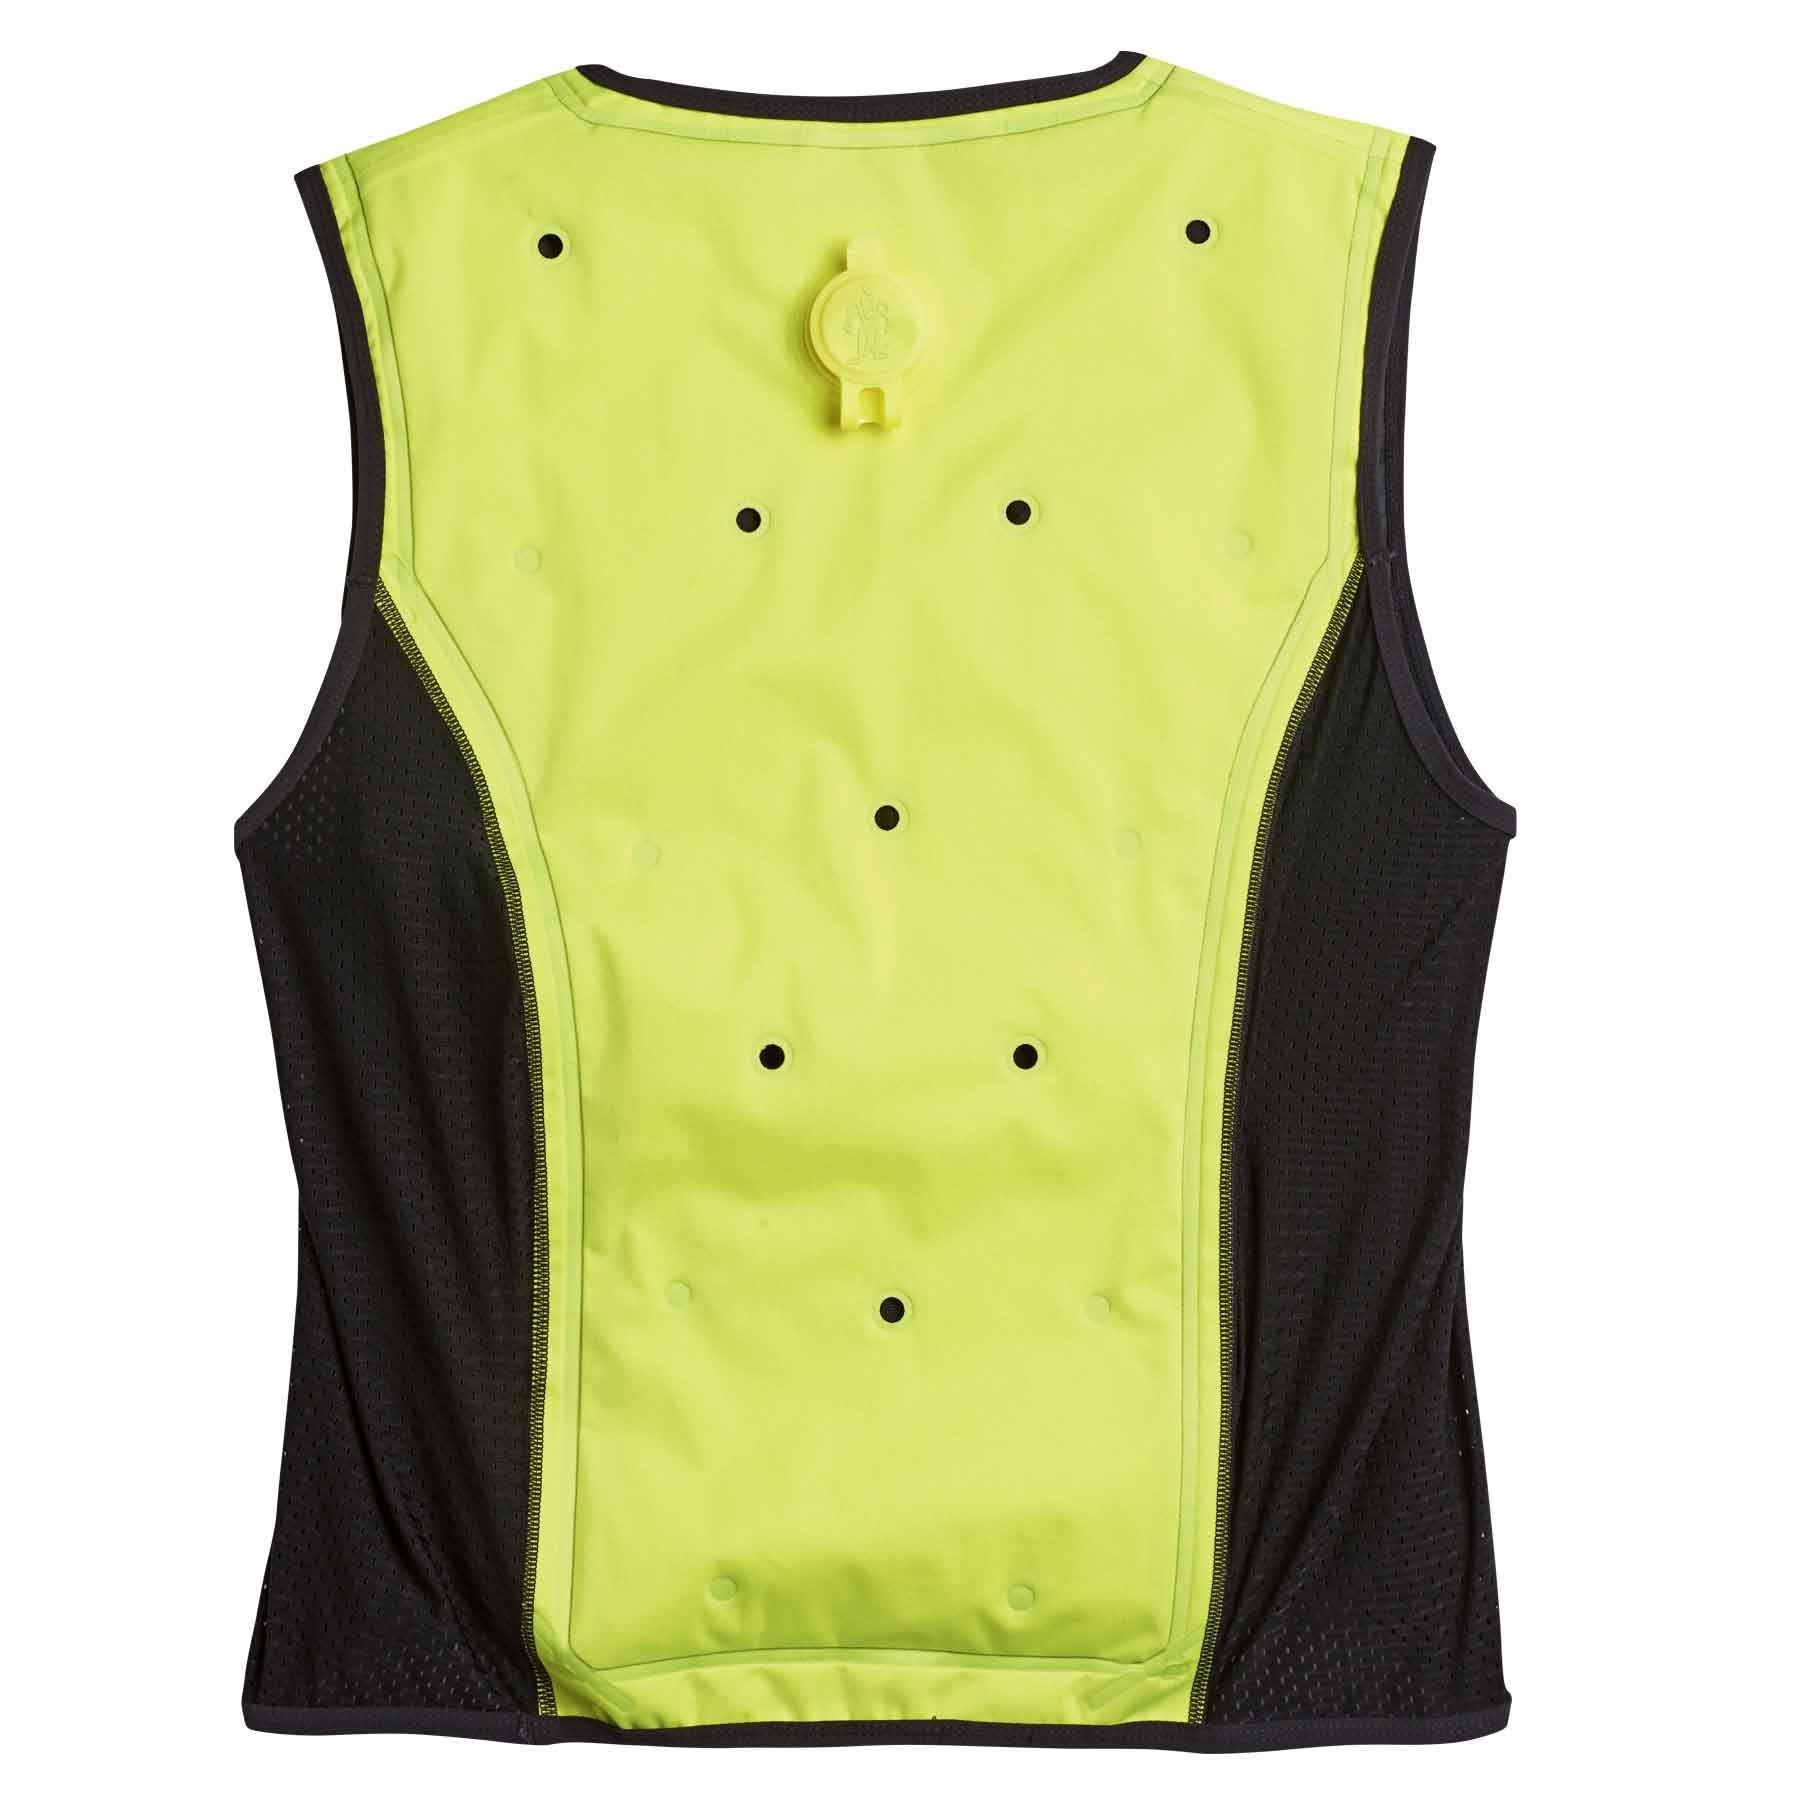 Evaporative Cooling Vest, Wearer Stays Cool and Dry, Breathable Comfort, Zipper Closure, Ergodyne Chill-Its 6685 by Ergodyne (Image #2)